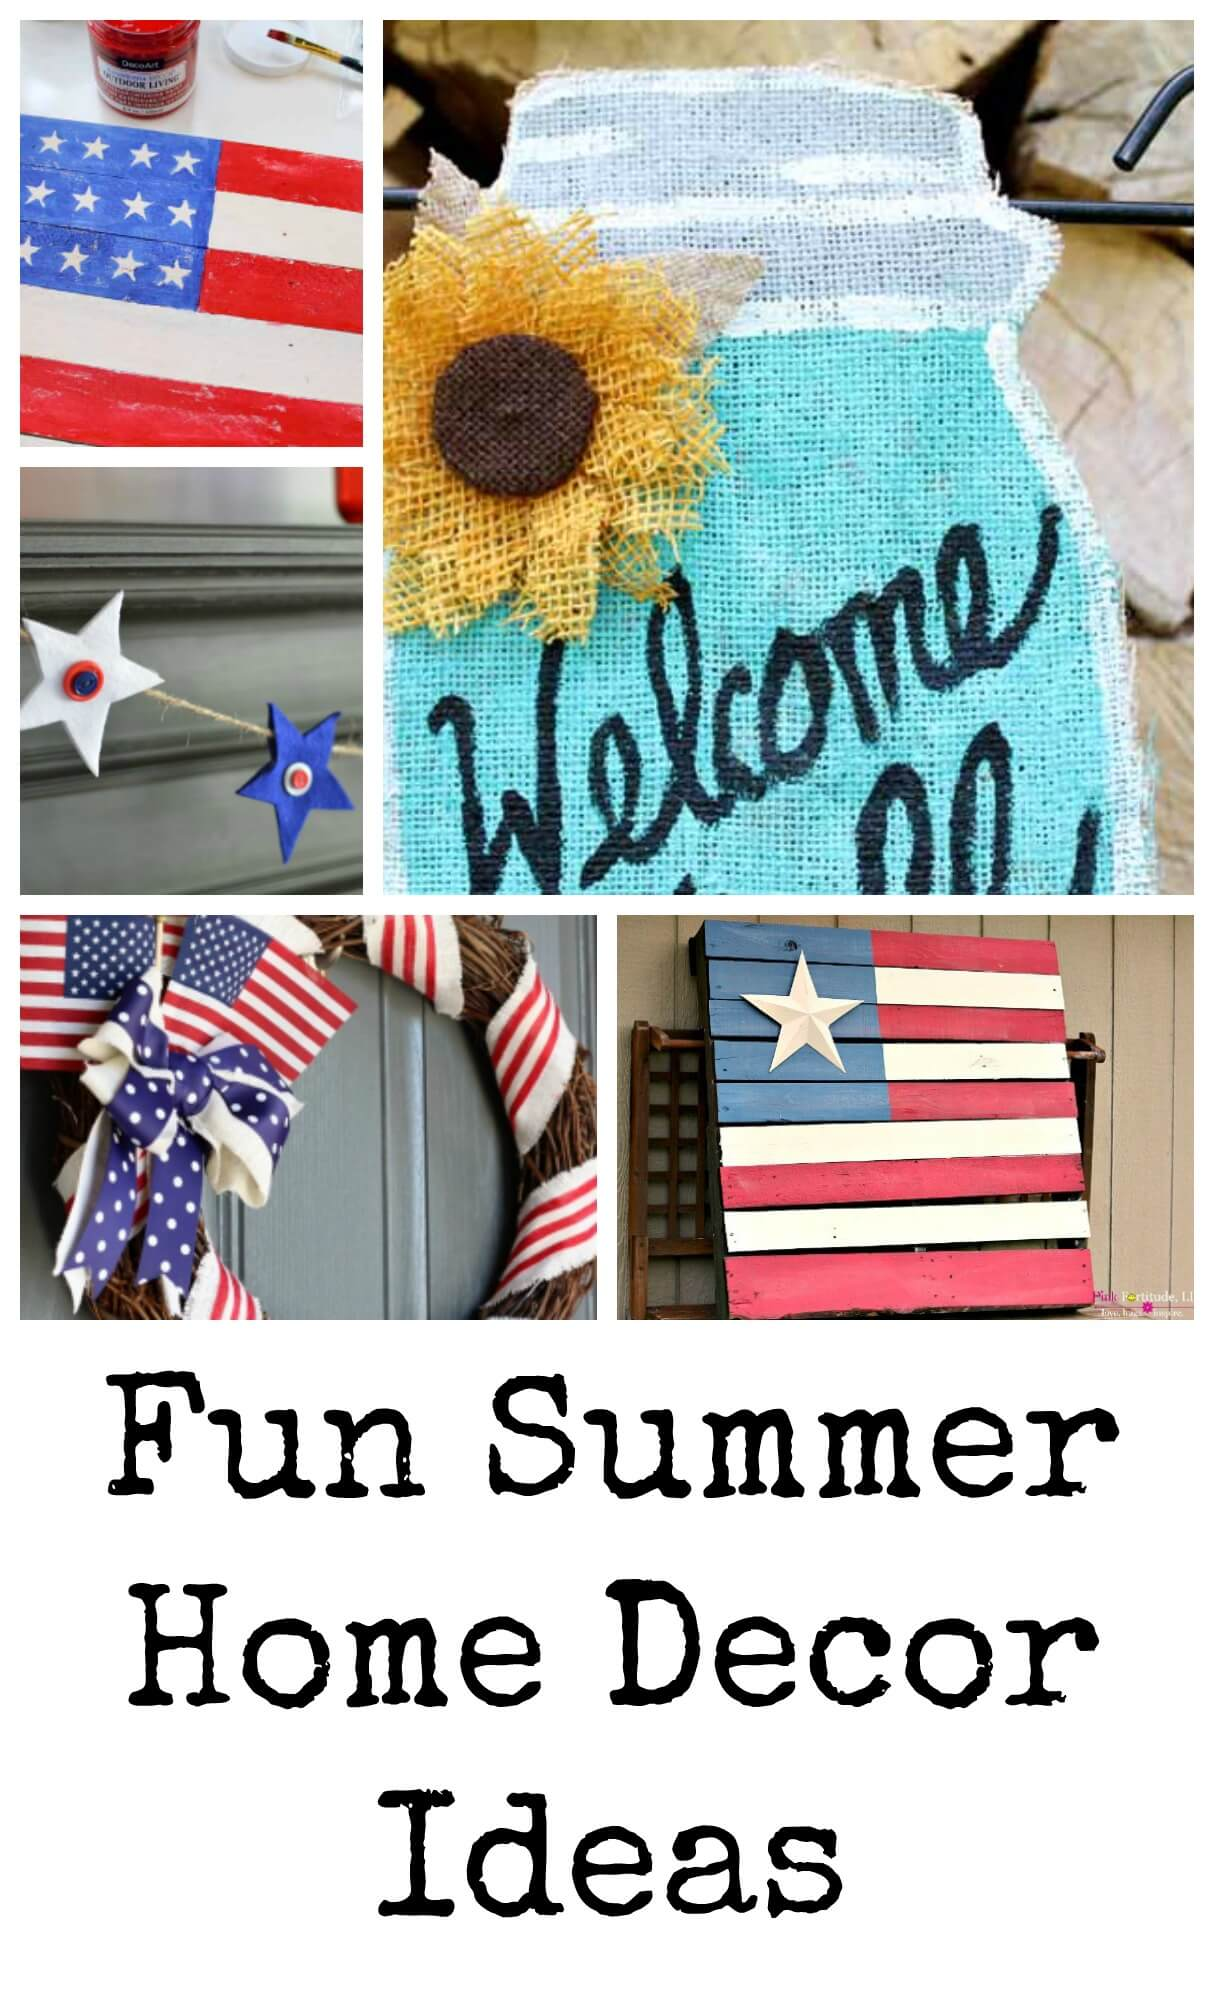 summer home decor from Life Sew Savory